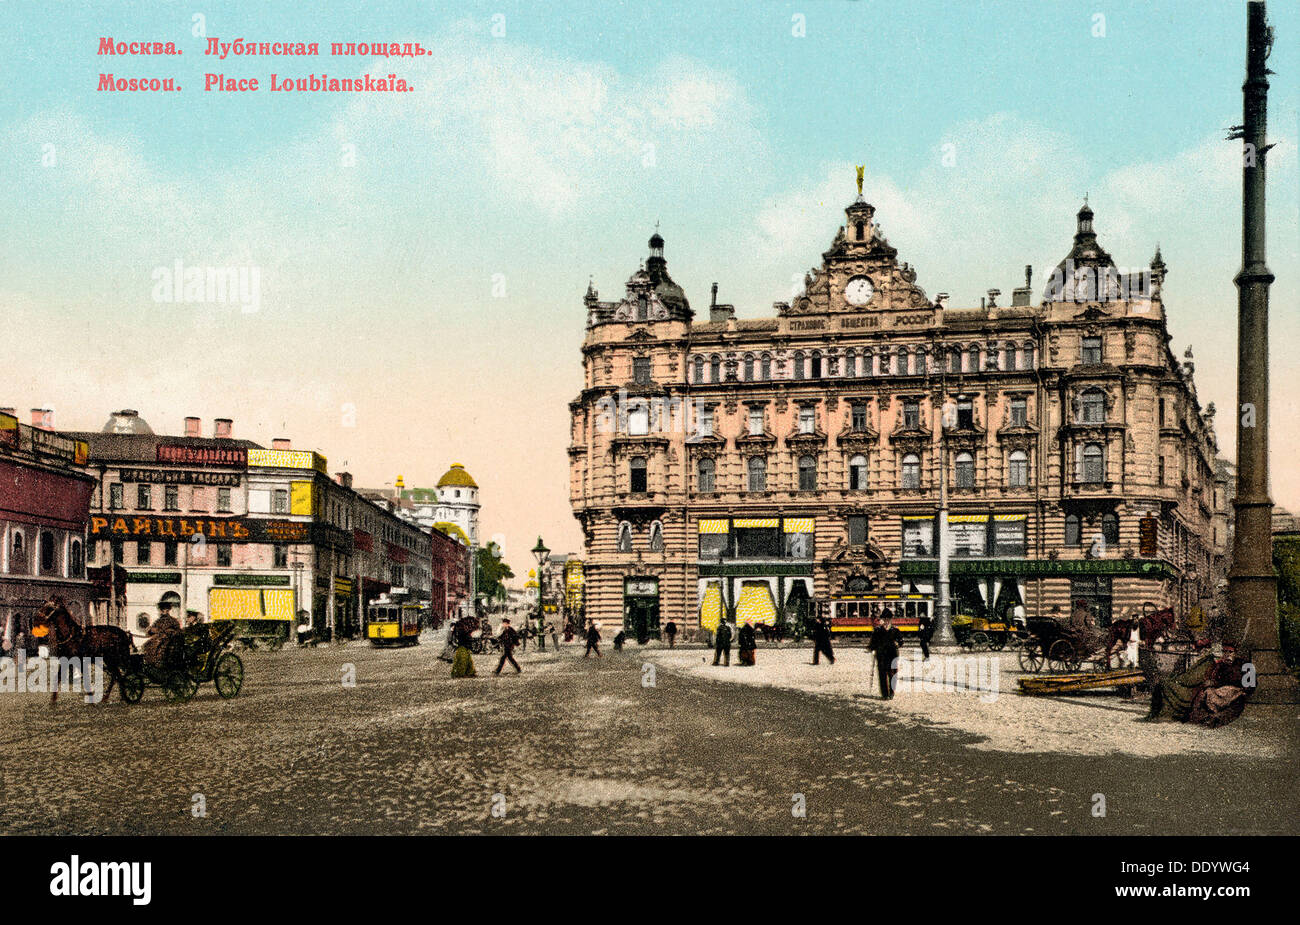 Lubyanka square, Moscow, Russia, c1890-c1905.  Artist: Anon - Stock Image